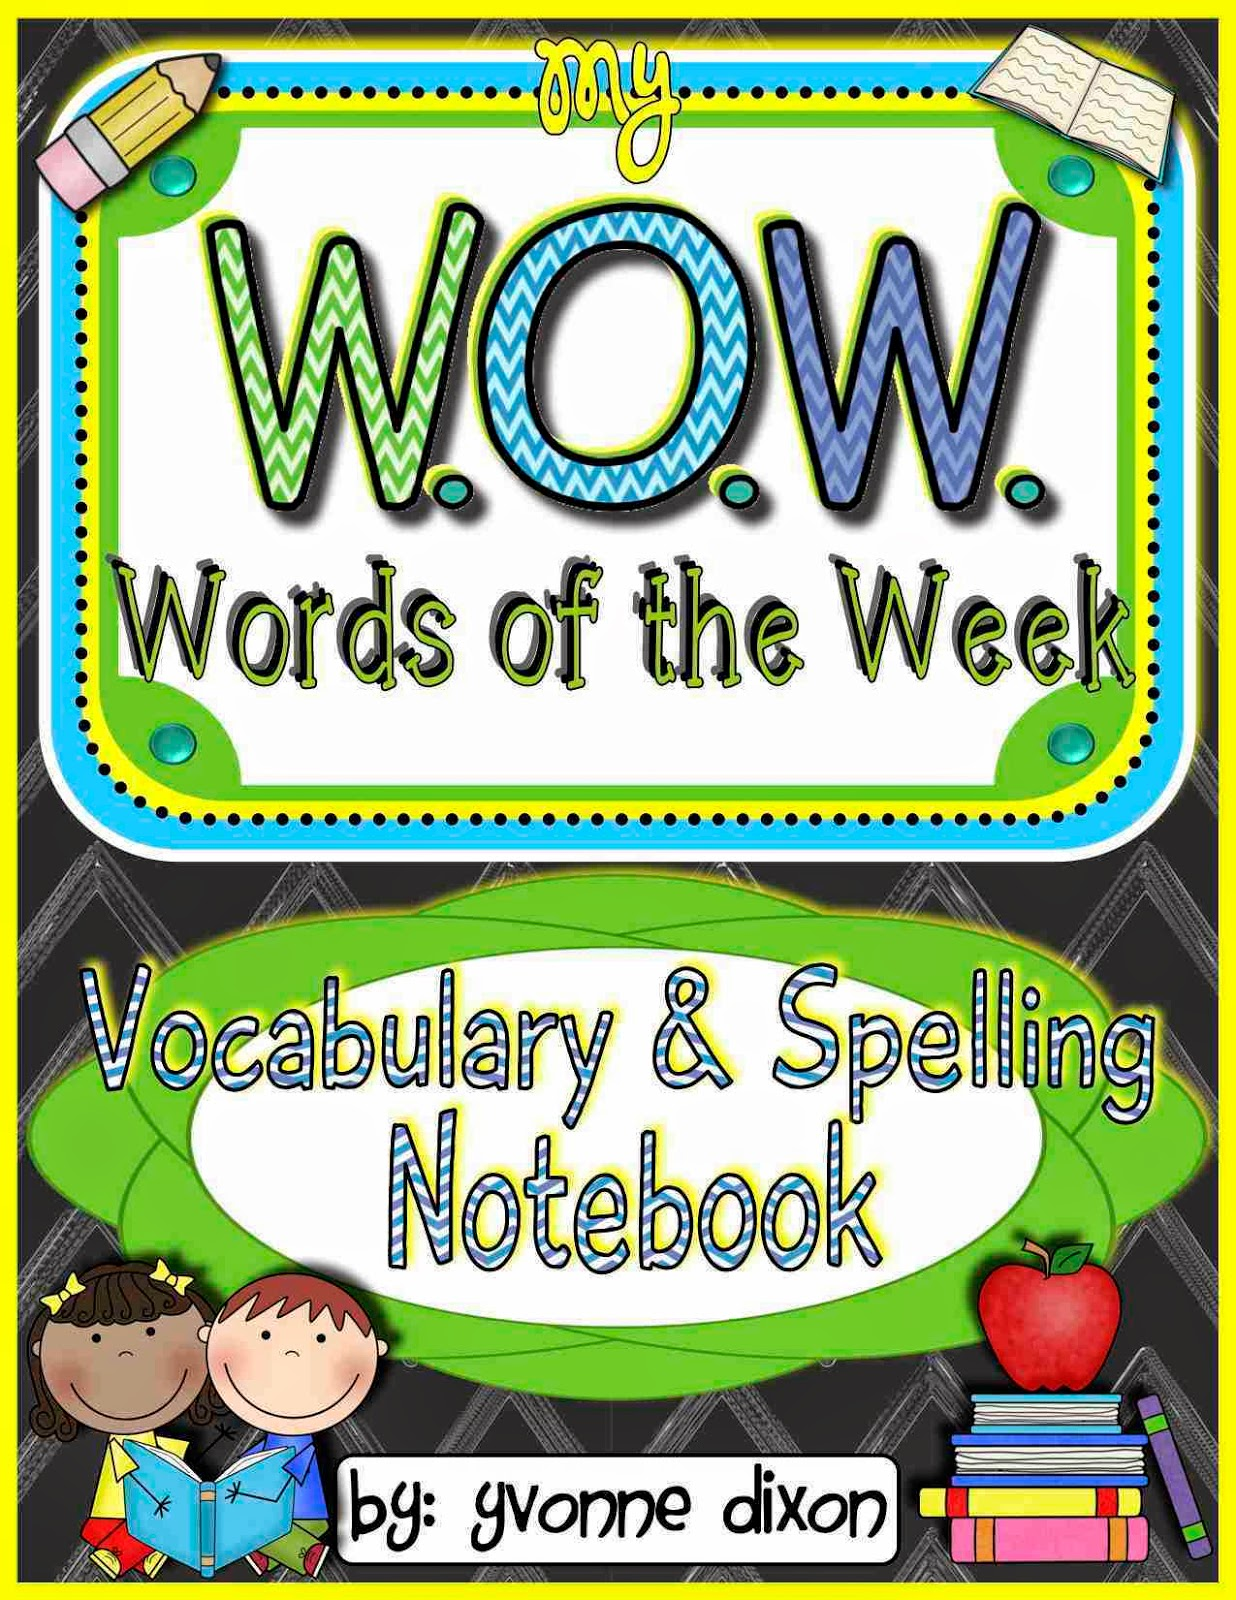 http://www.teacherspayteachers.com/Product/WOW-Words-of-the-Week-Vocabulary-and-Spelling-Interactive-Notebook-1357208